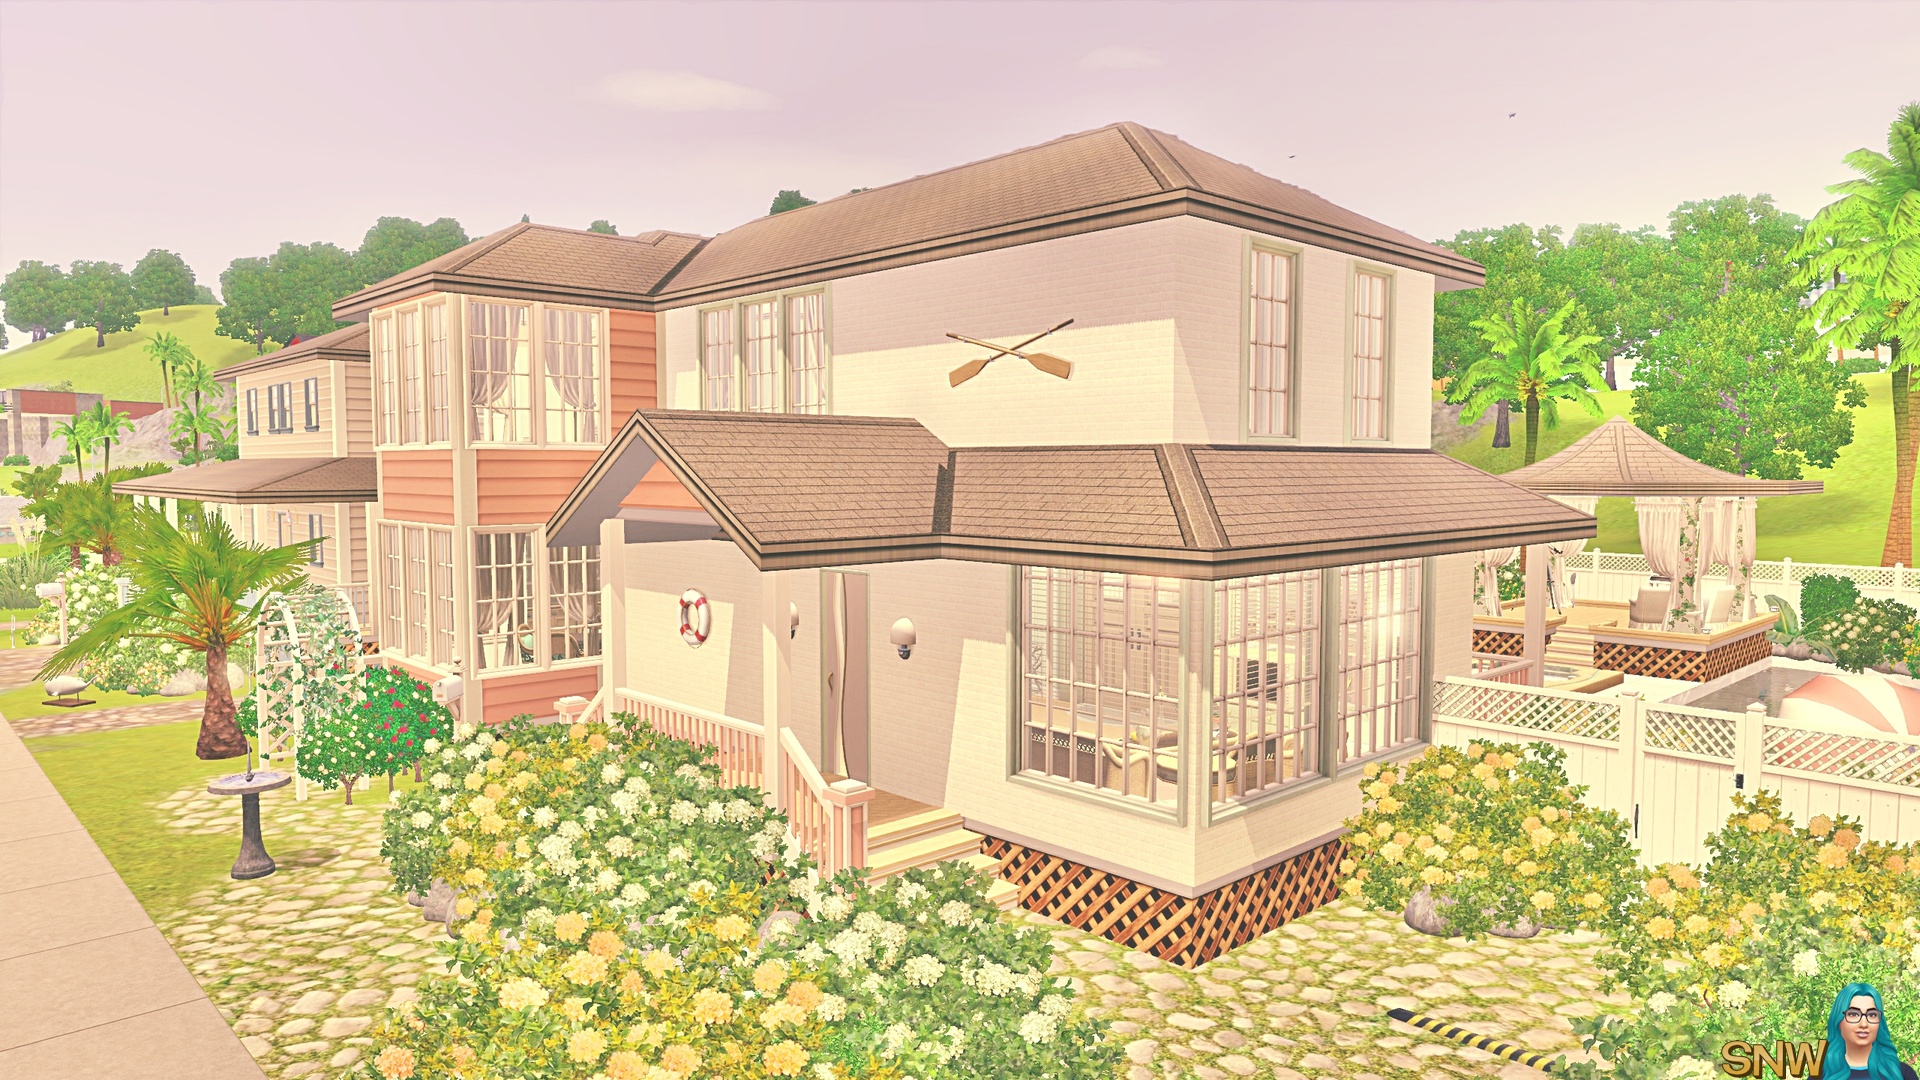 Minty peach beach house snw for Beach house plans sims 3